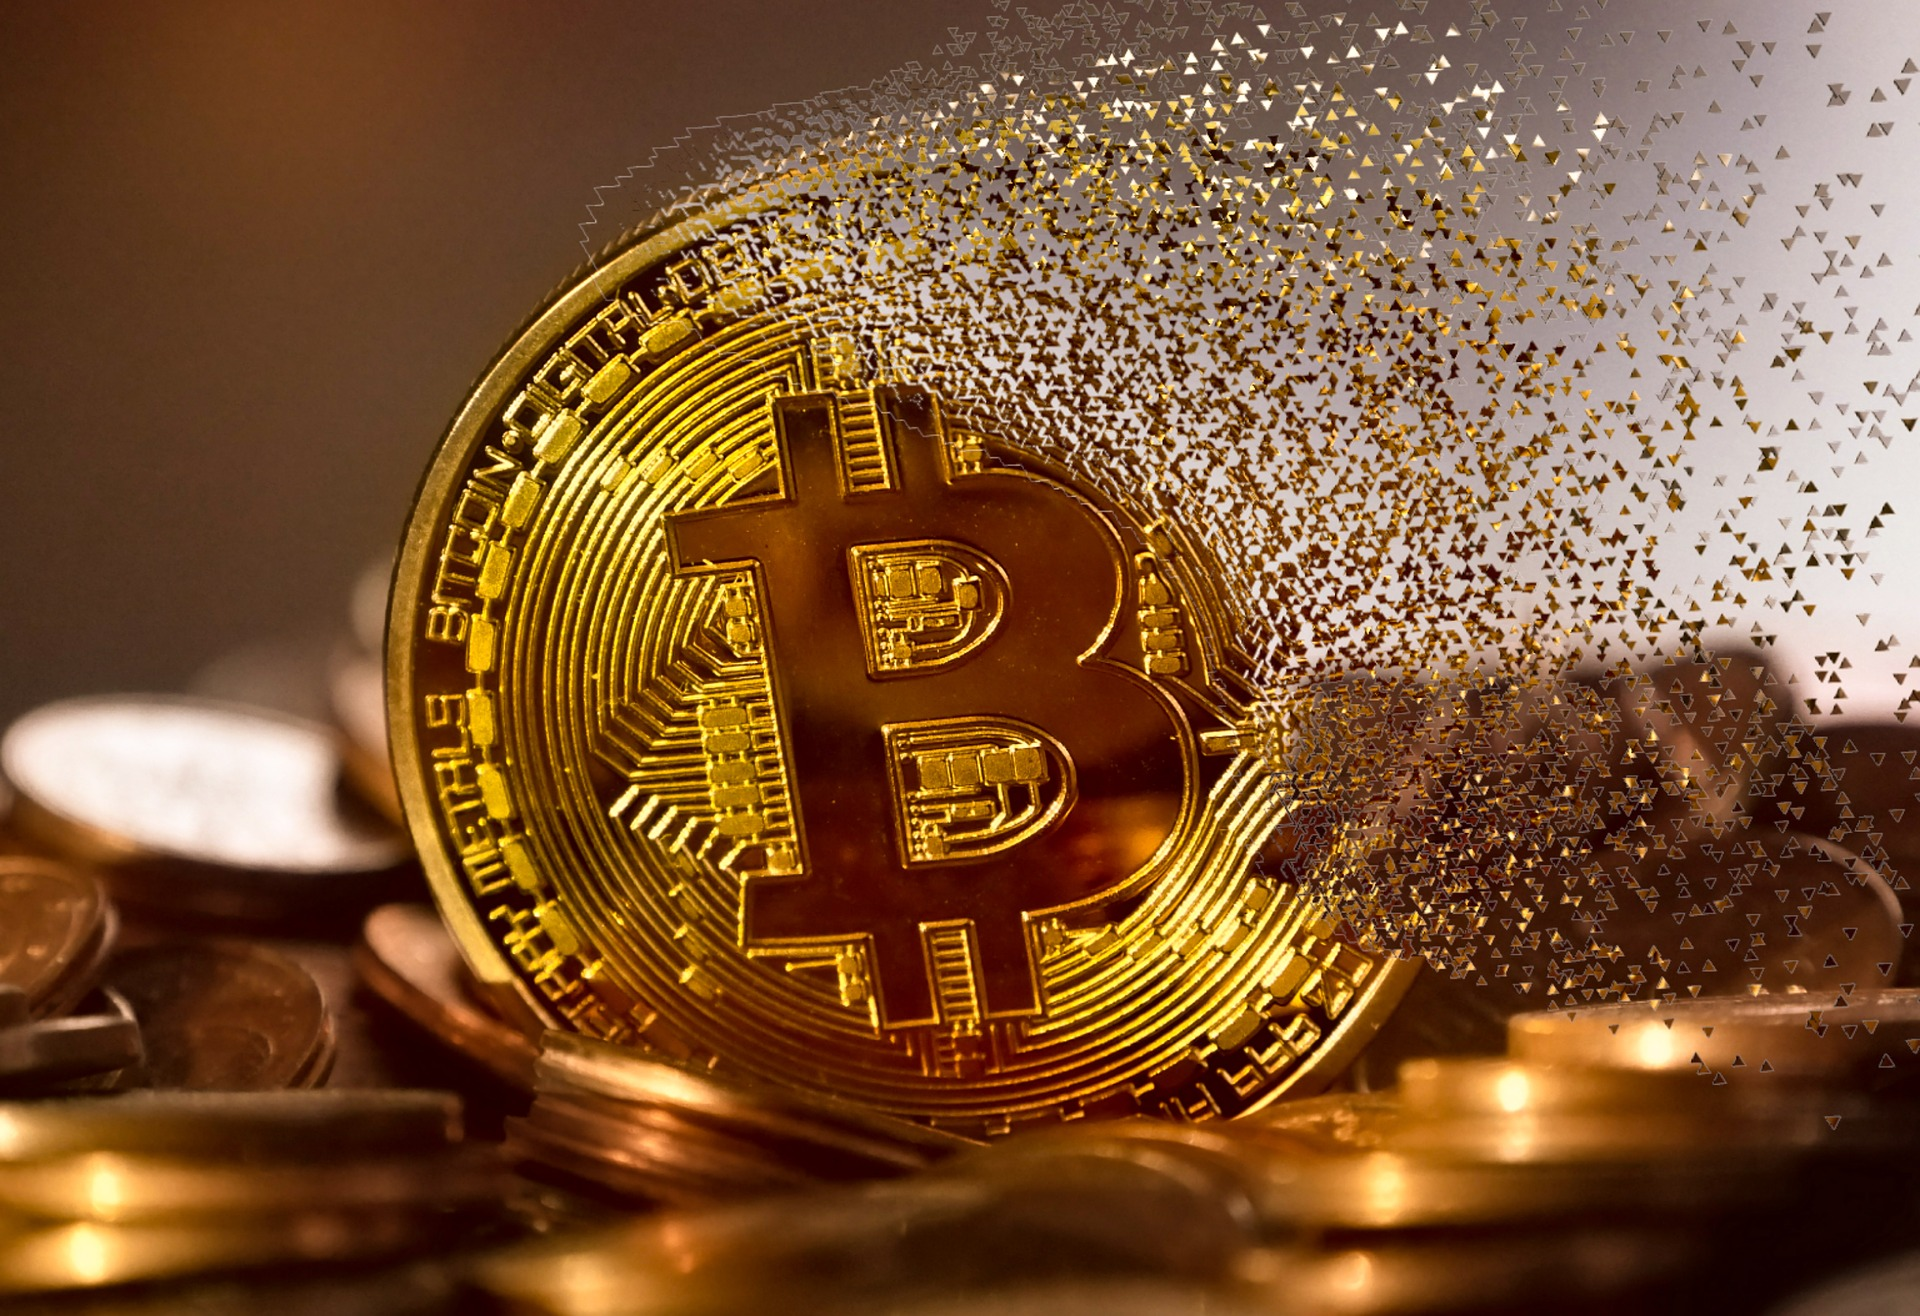 buy-gold-with-bitcoin.jpg